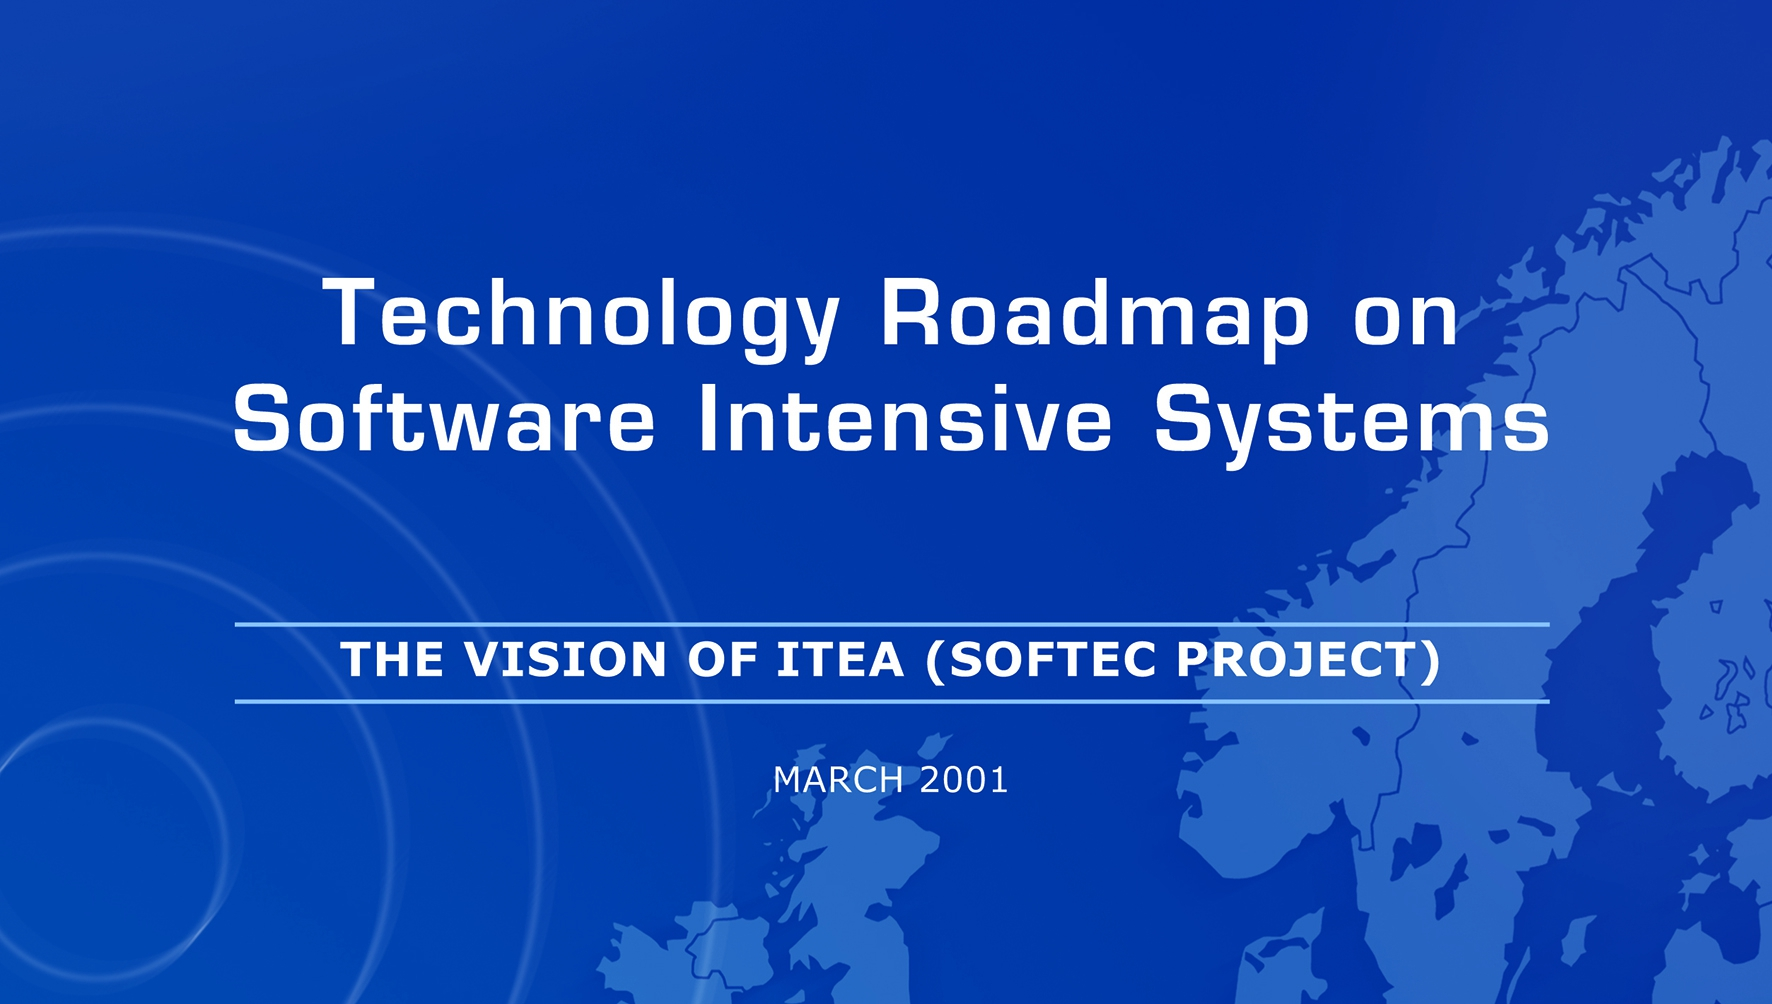 ITEA Roadmap for Software-Intensive